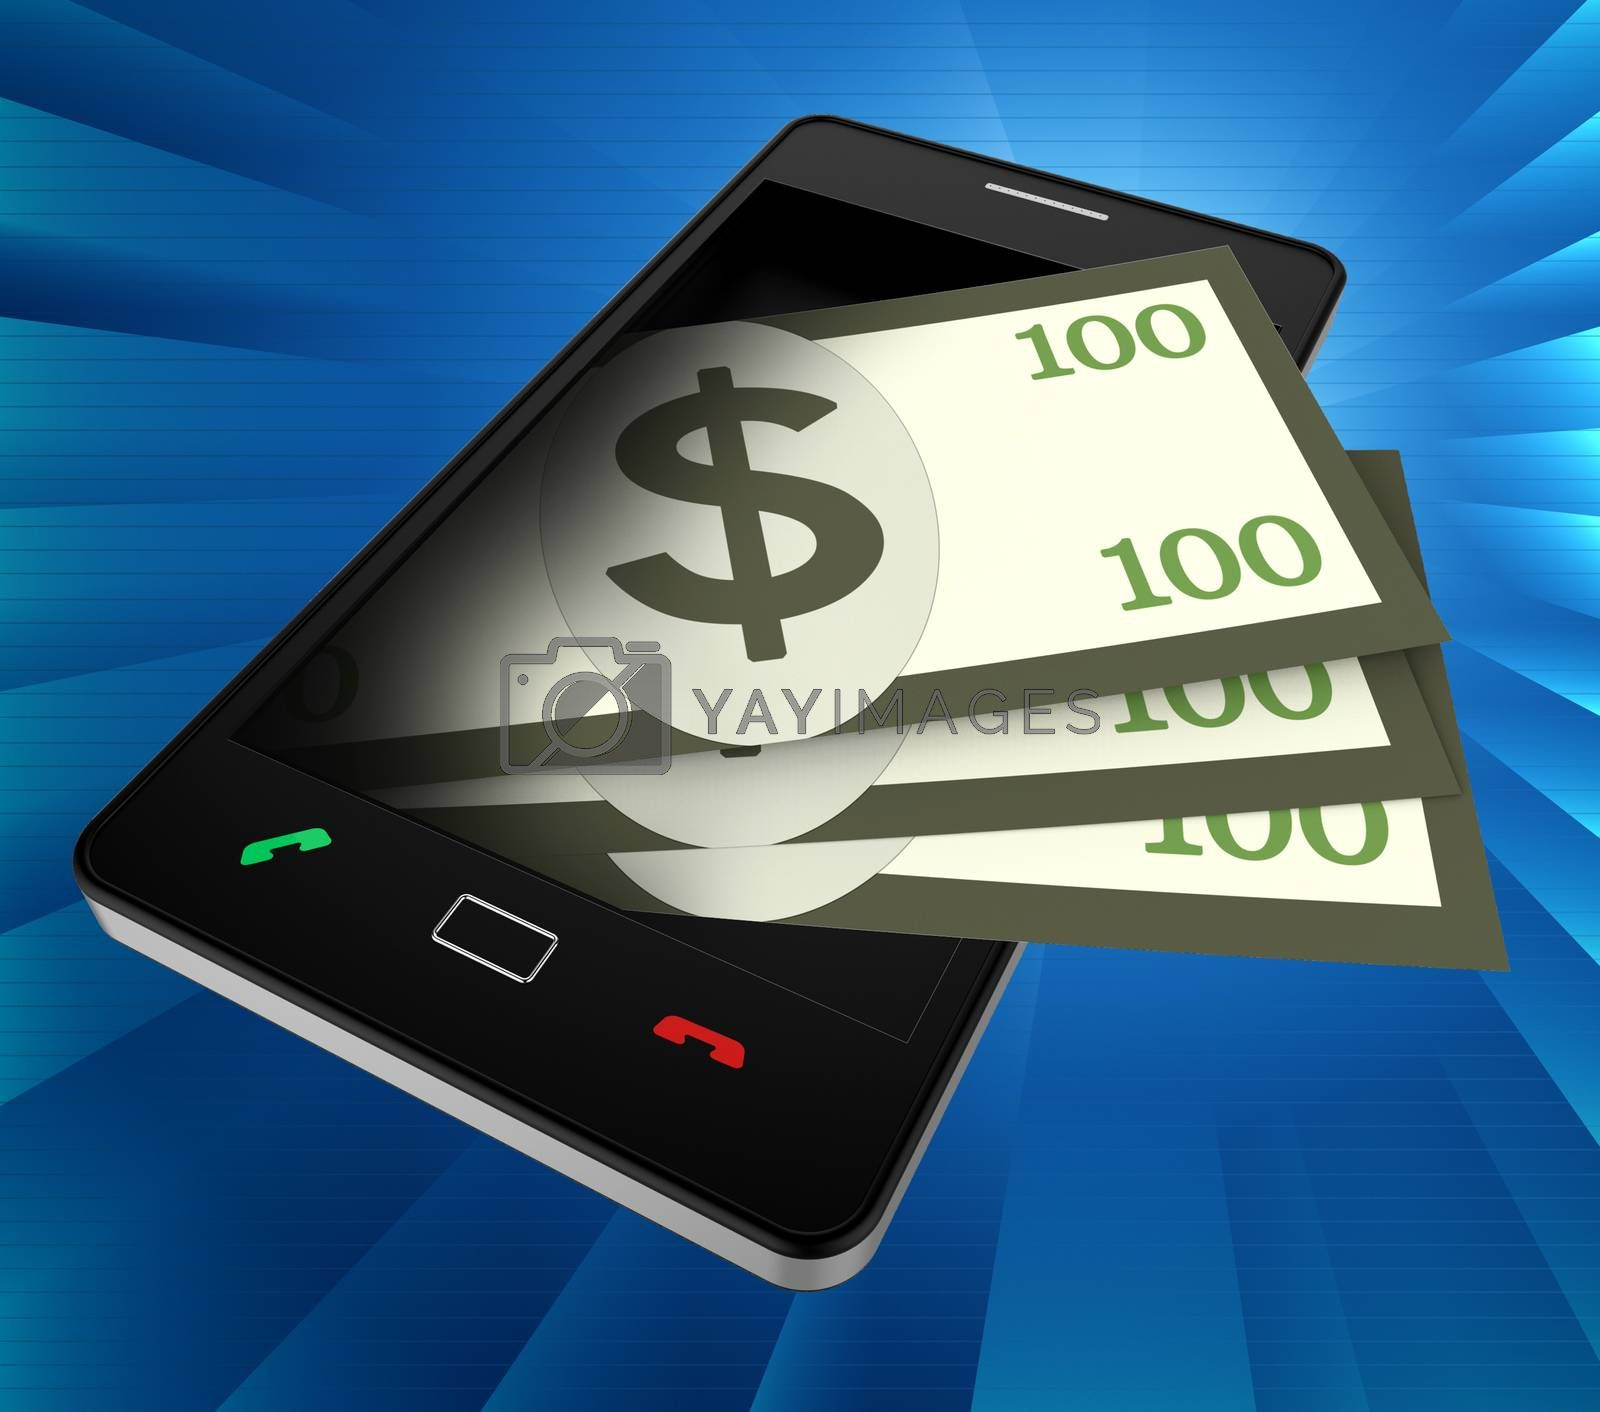 Phone Dollars Indicates World Wide Web And Banking by stuartmiles